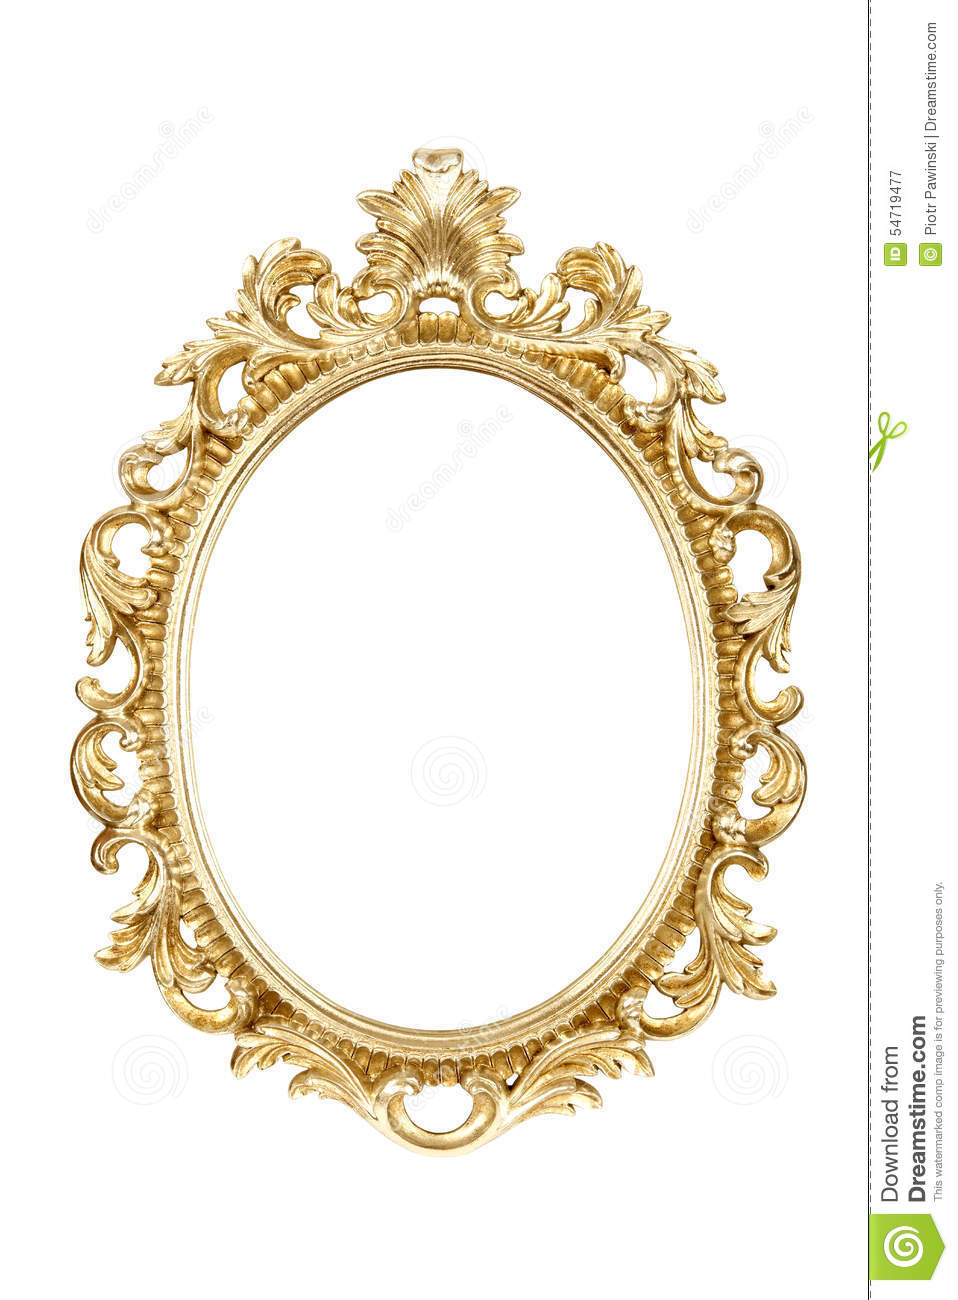 Oval gold picture frame isolated with clipping path stock for Marco espejo vintage